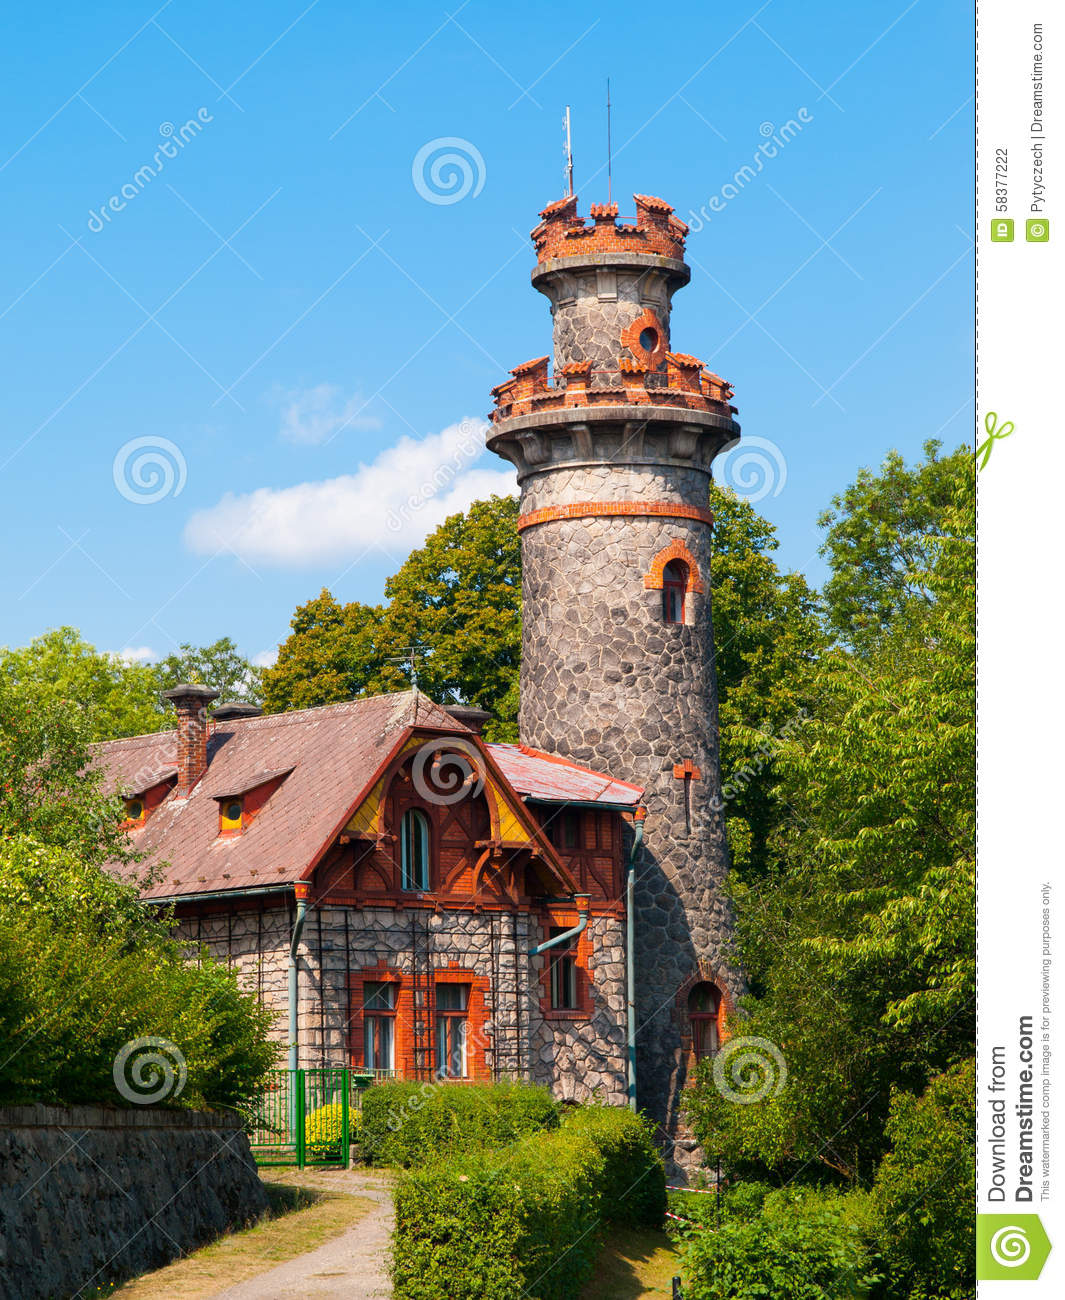 Fairytale House With Tower Stock Photo Image Of